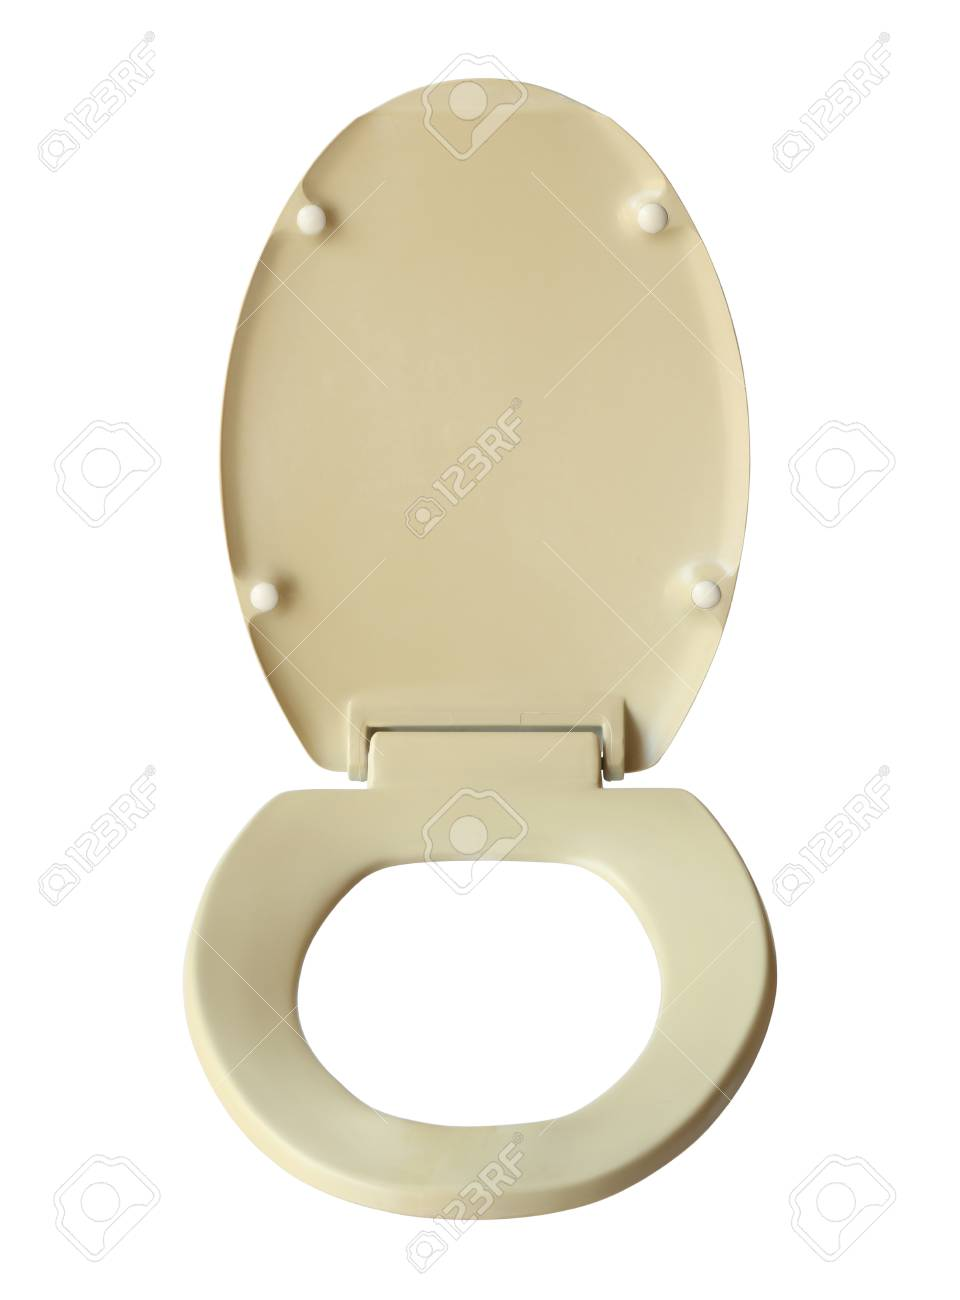 Magnificent Toilet Bowl Seat Cover Isolated On White Background Beatyapartments Chair Design Images Beatyapartmentscom